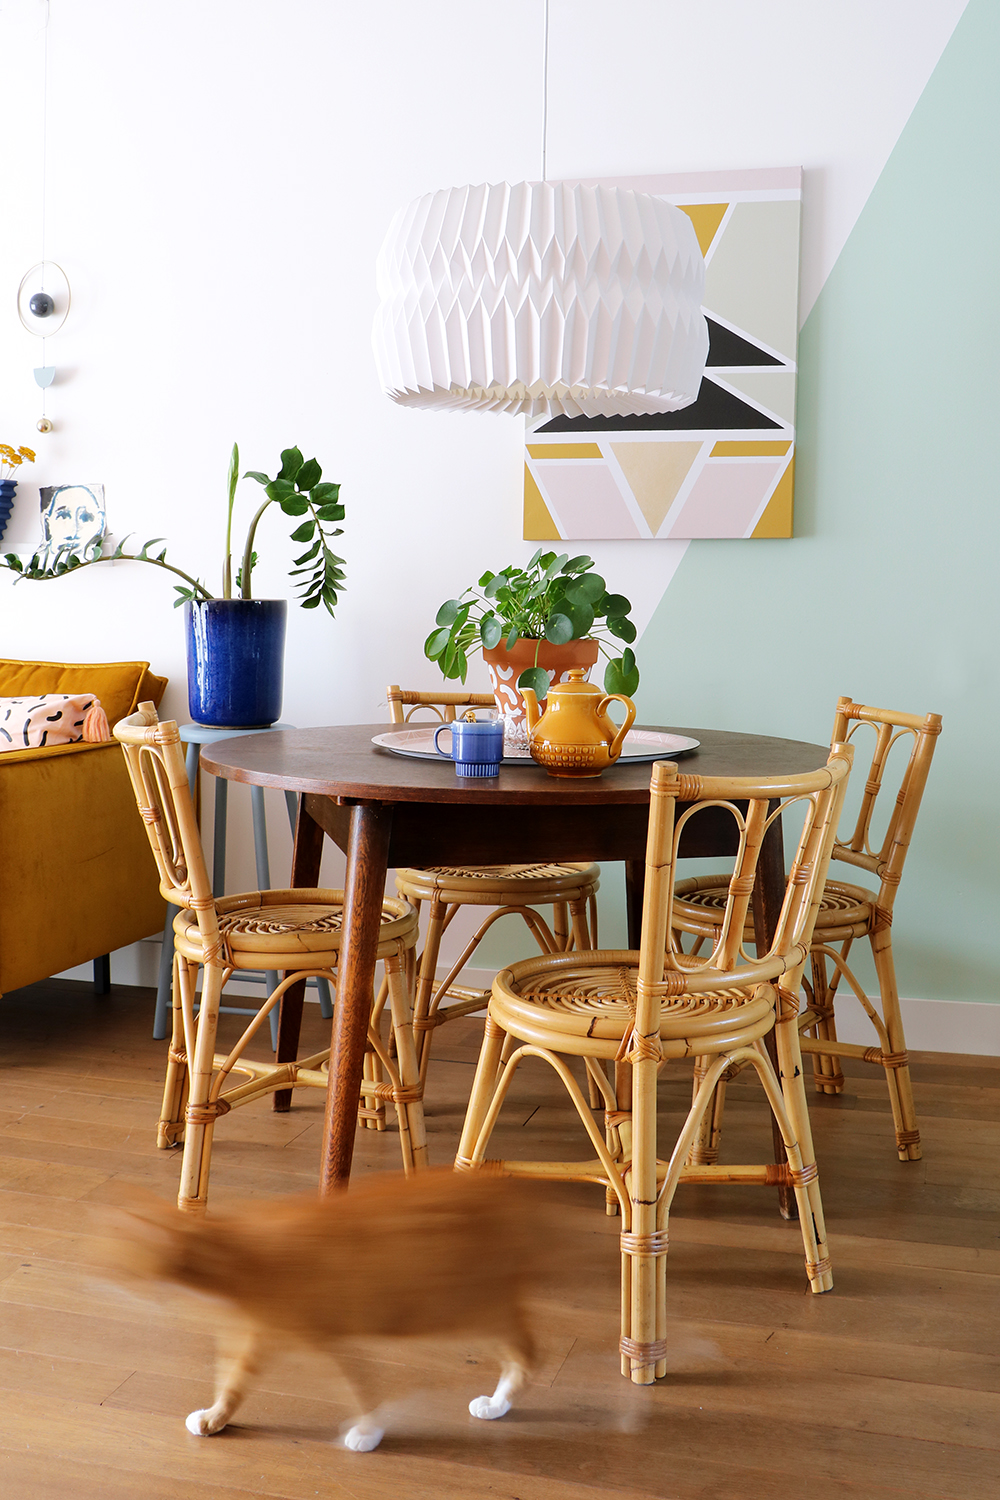 Rattan dining chairs  - €160 - Enter My Attic (only available to Netherlands buyers sadly!)